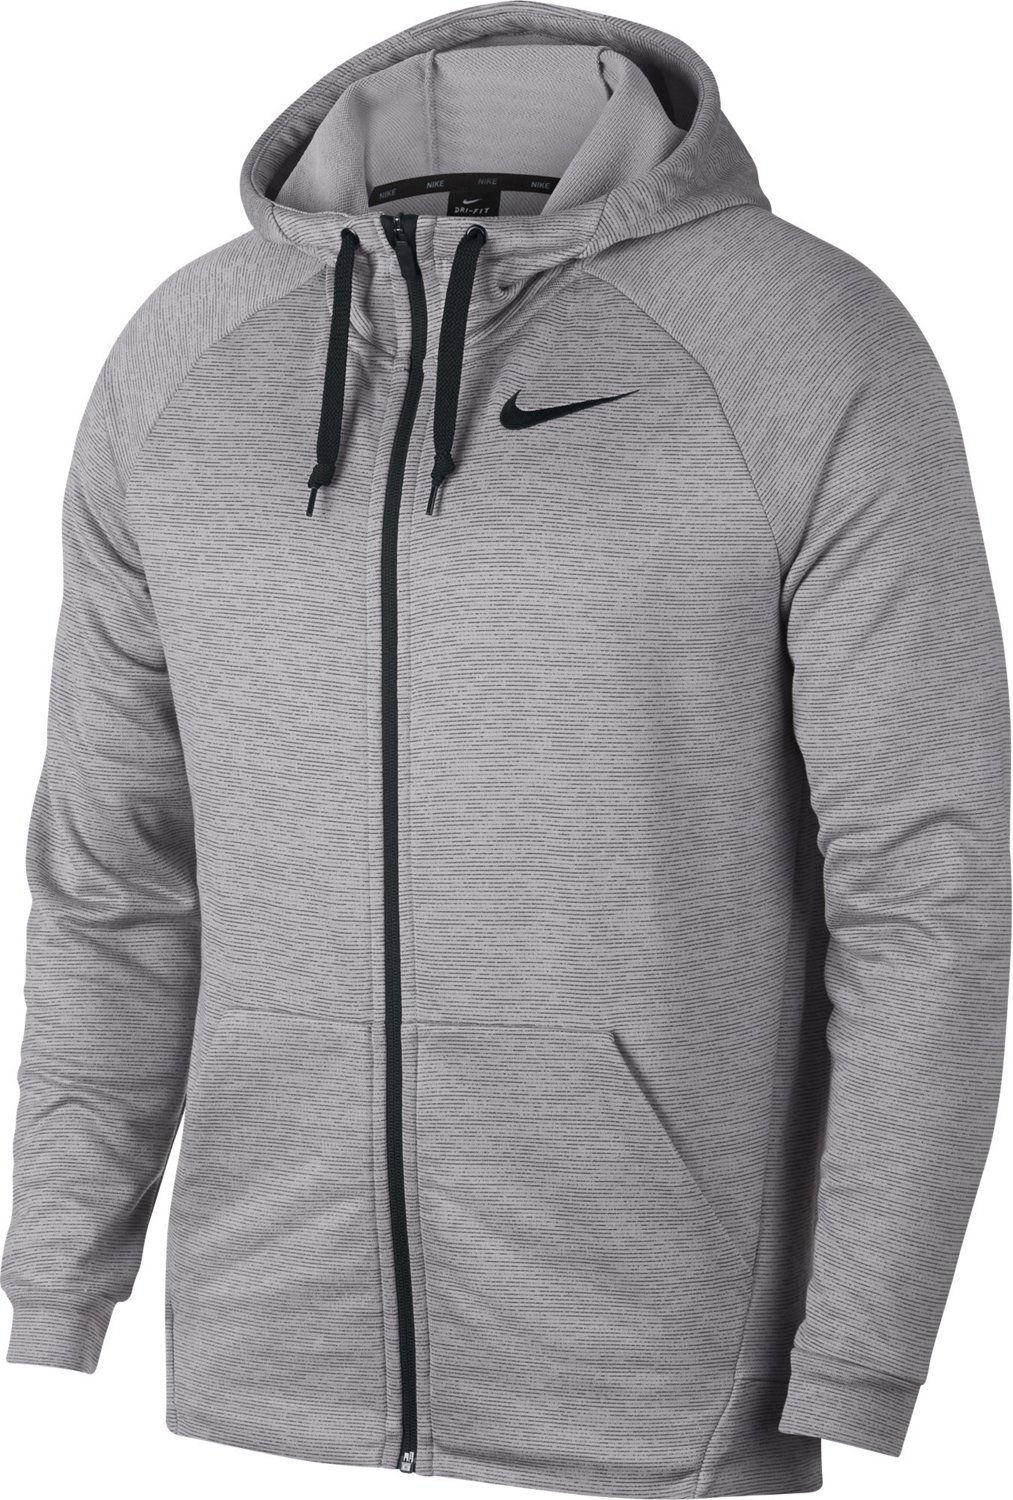 Display product reviews for Nike Men s Dry Training Hoodie 6d9705e8b